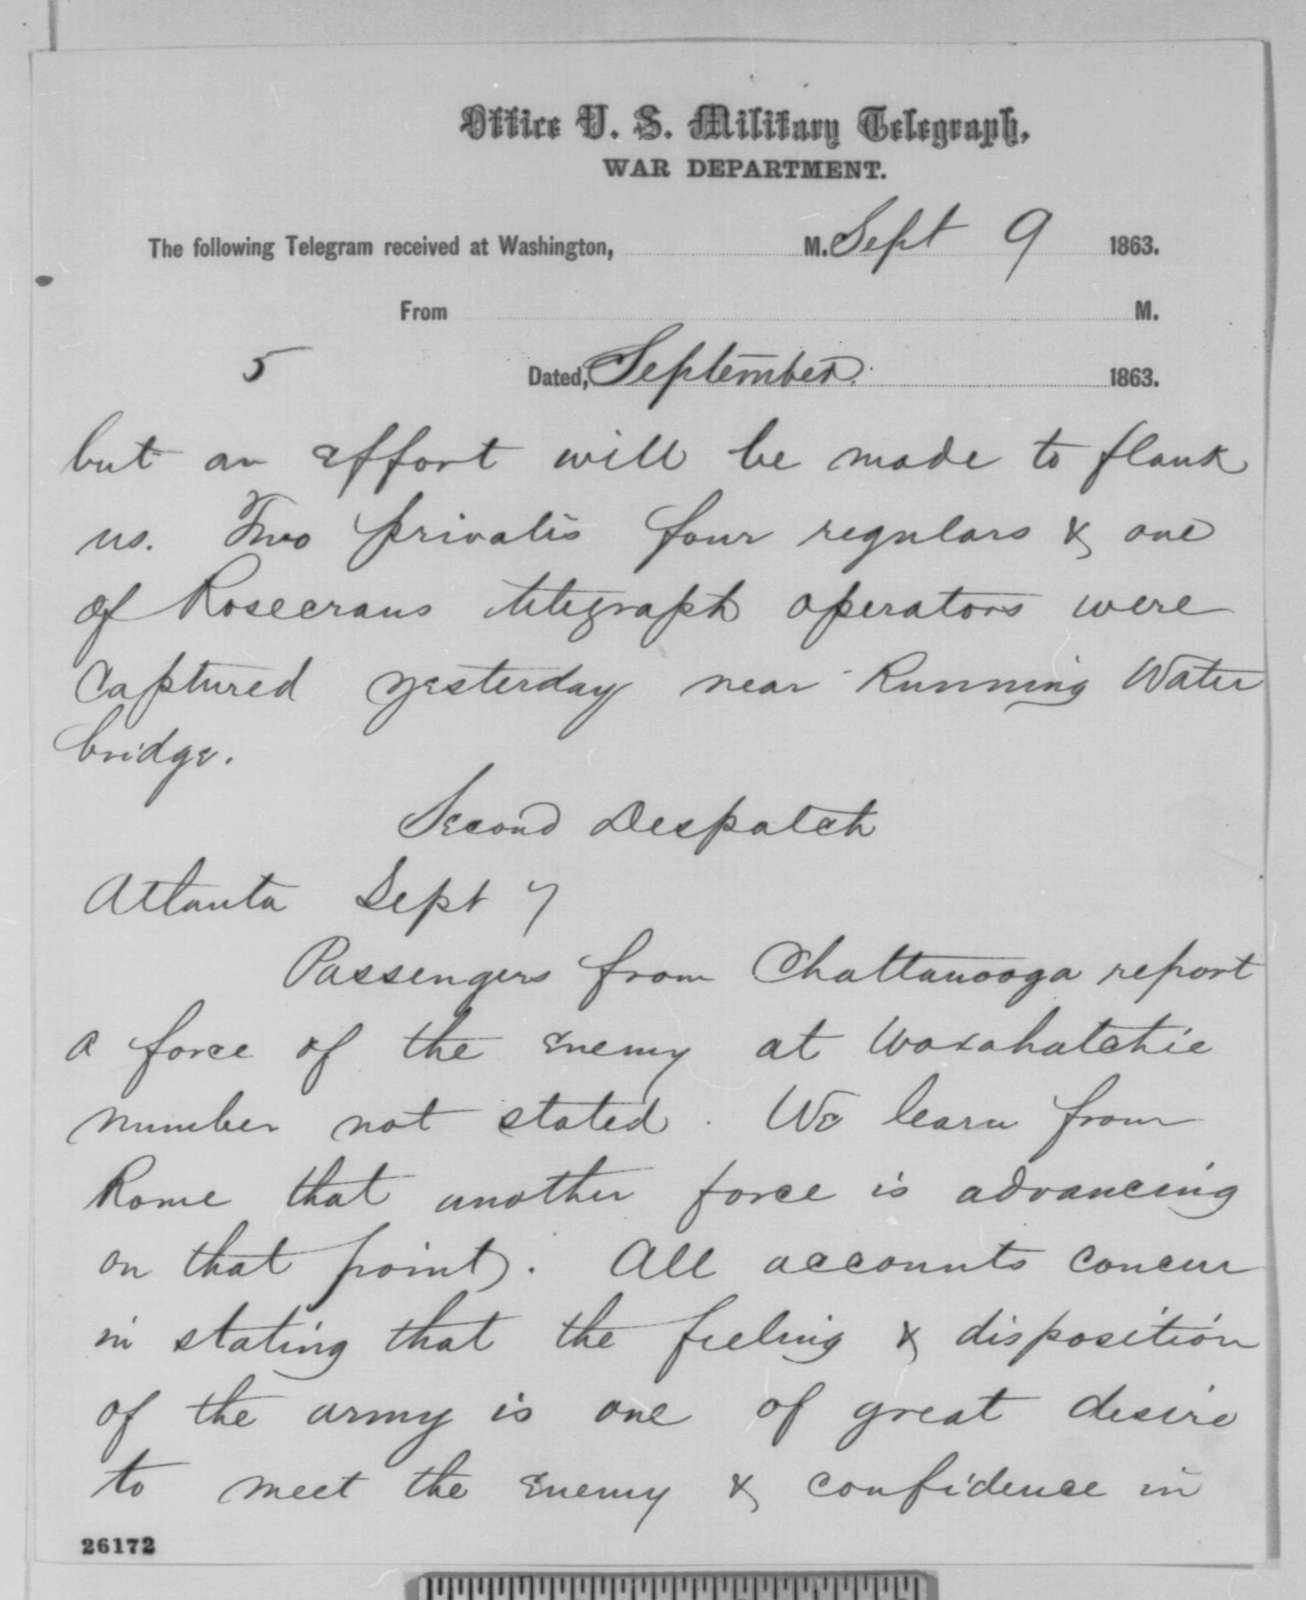 George D. Sheldon to Thomas T. Eckert, Wednesday, September 09, 1863  (Telegram reporting news from the Richmond papers)